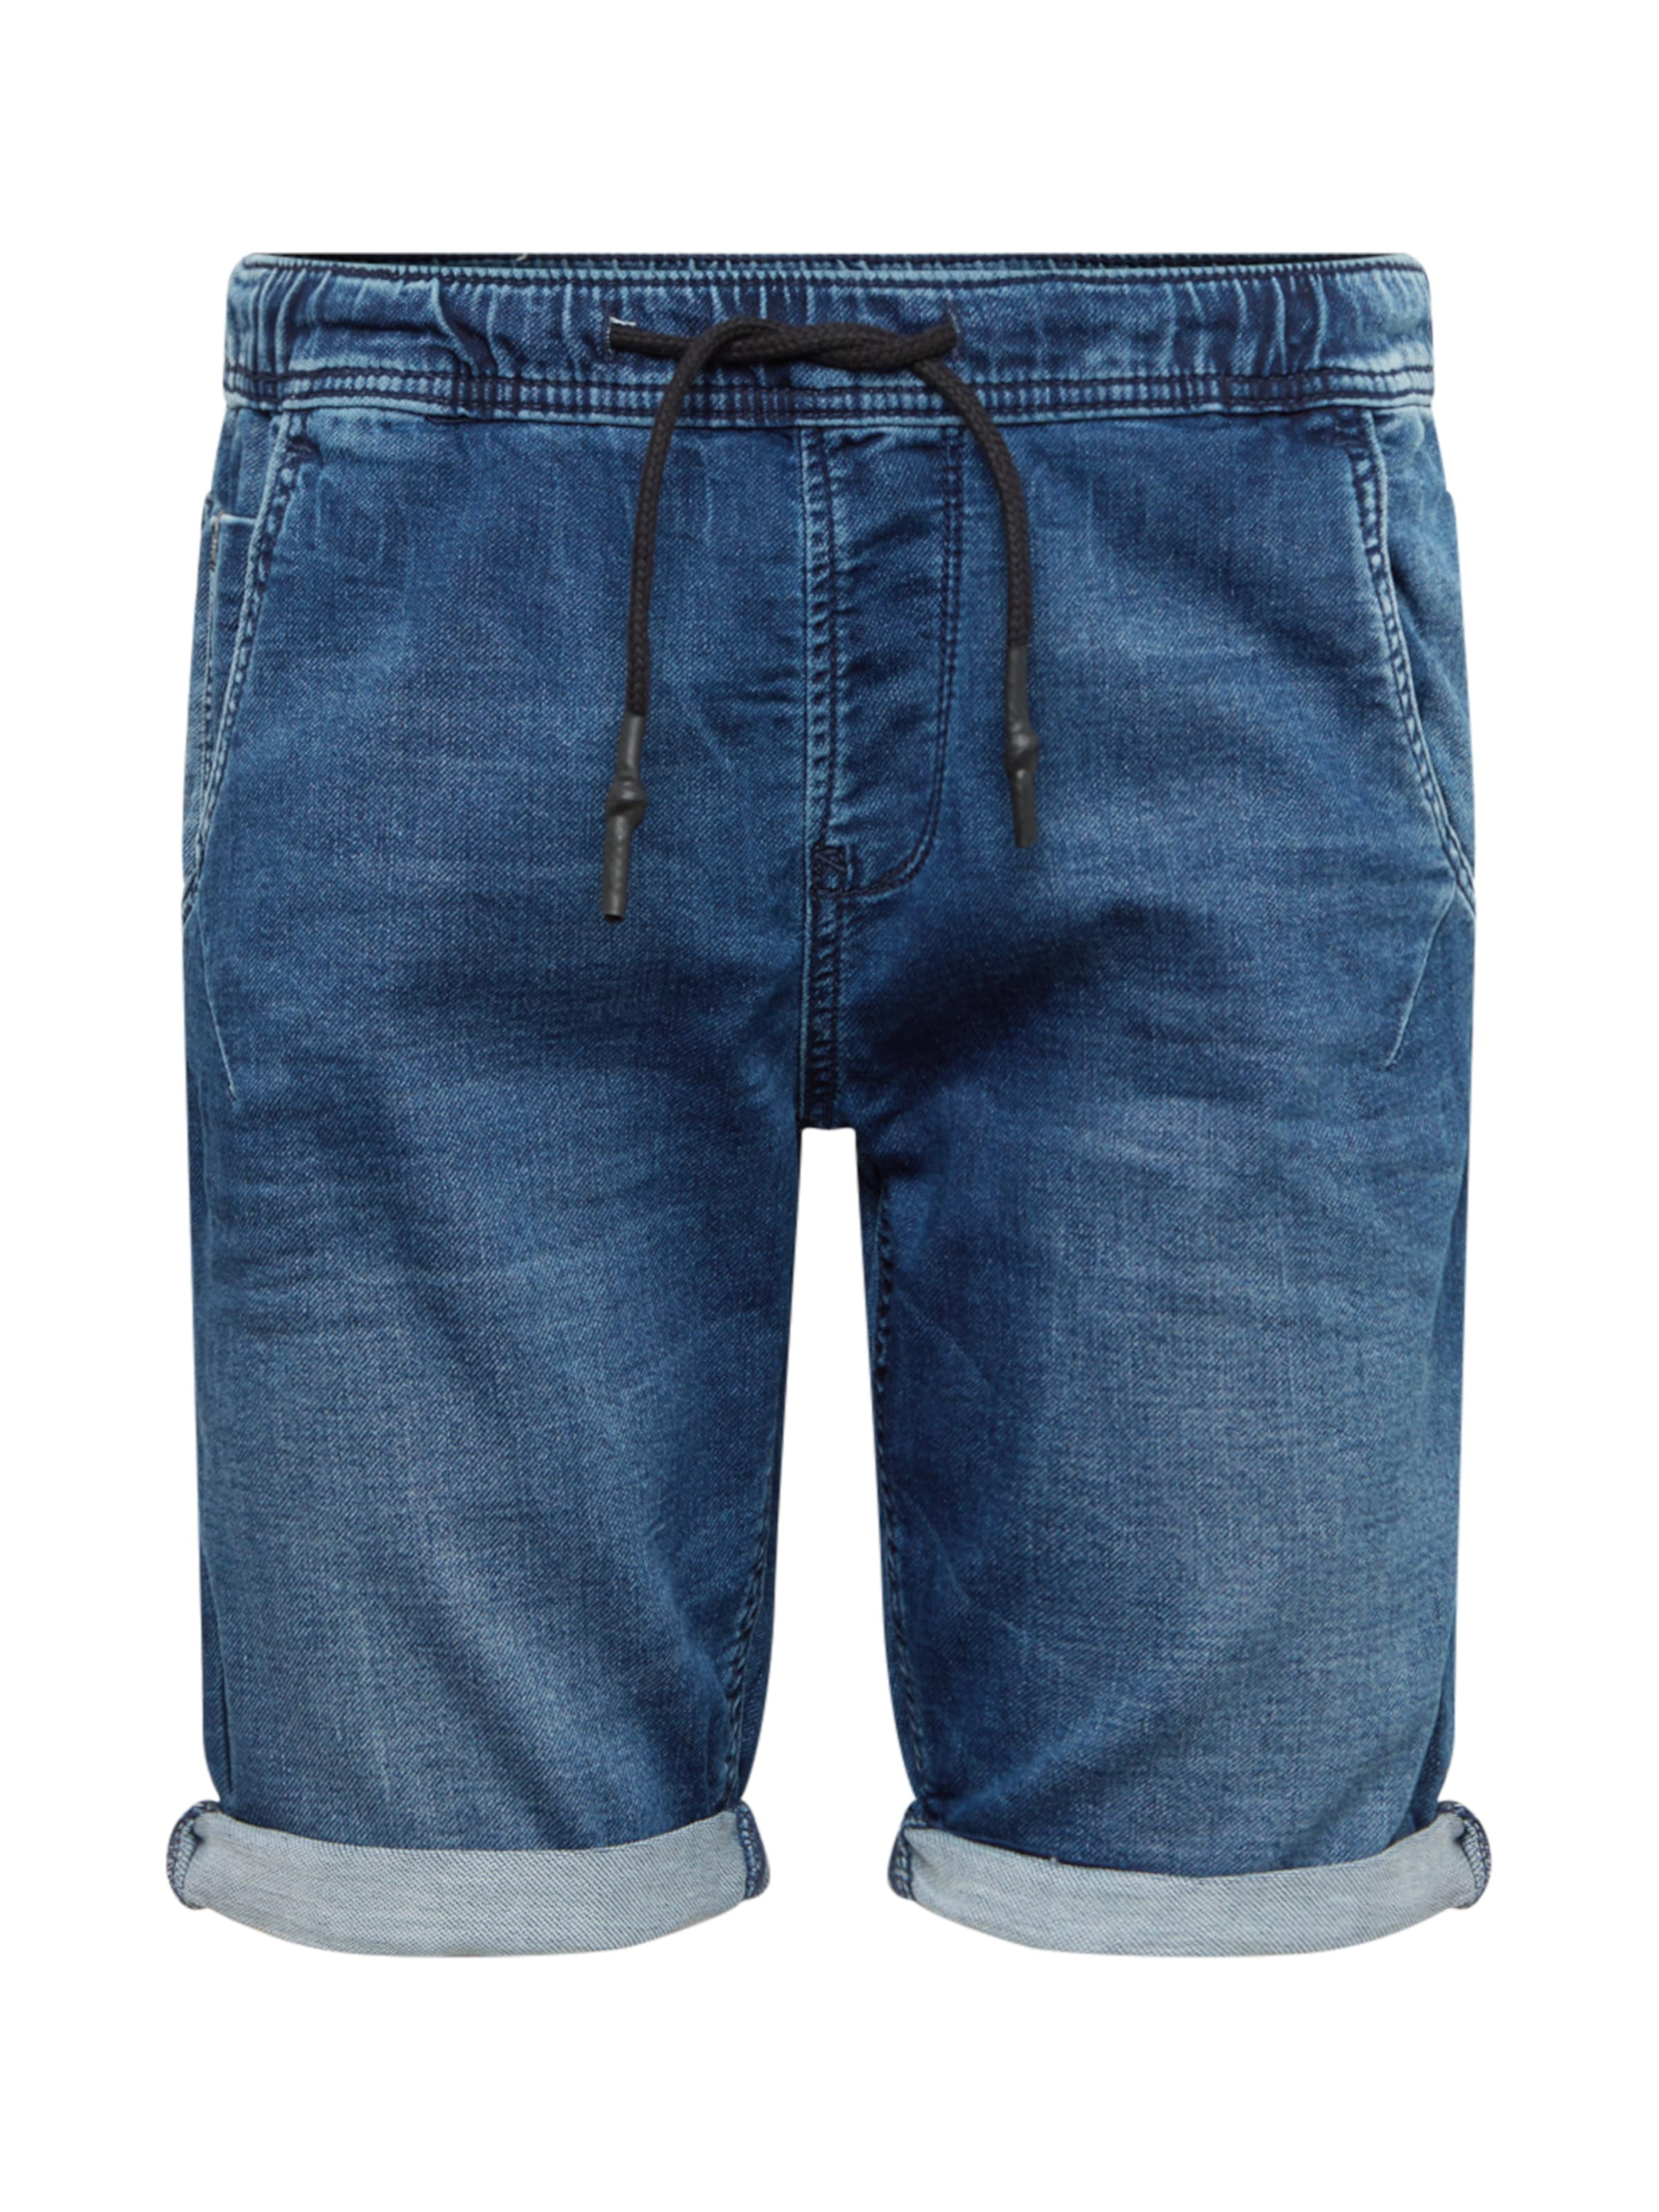 Tom Jeansbermuda Tailor Blue In Denim T1lKJcF